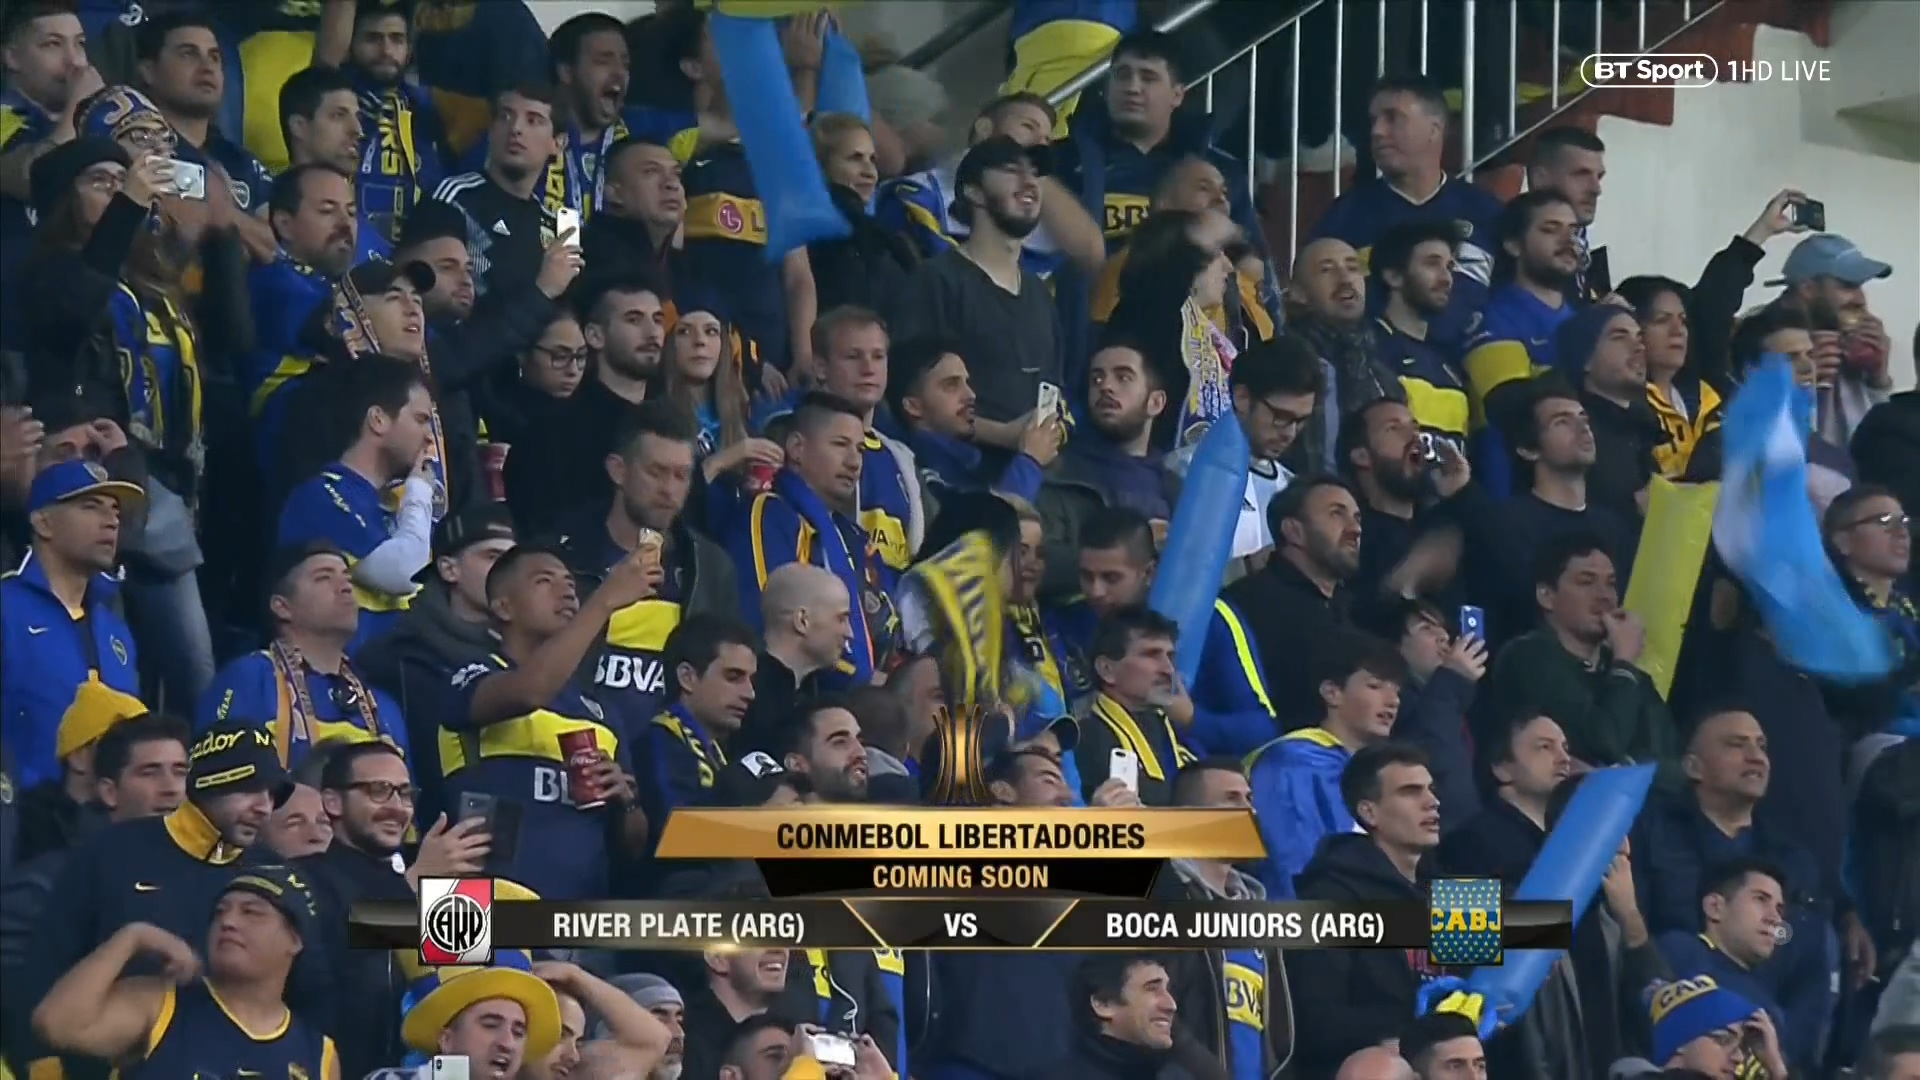 River Plate vs Boca Juniors – Highlights & Full Match